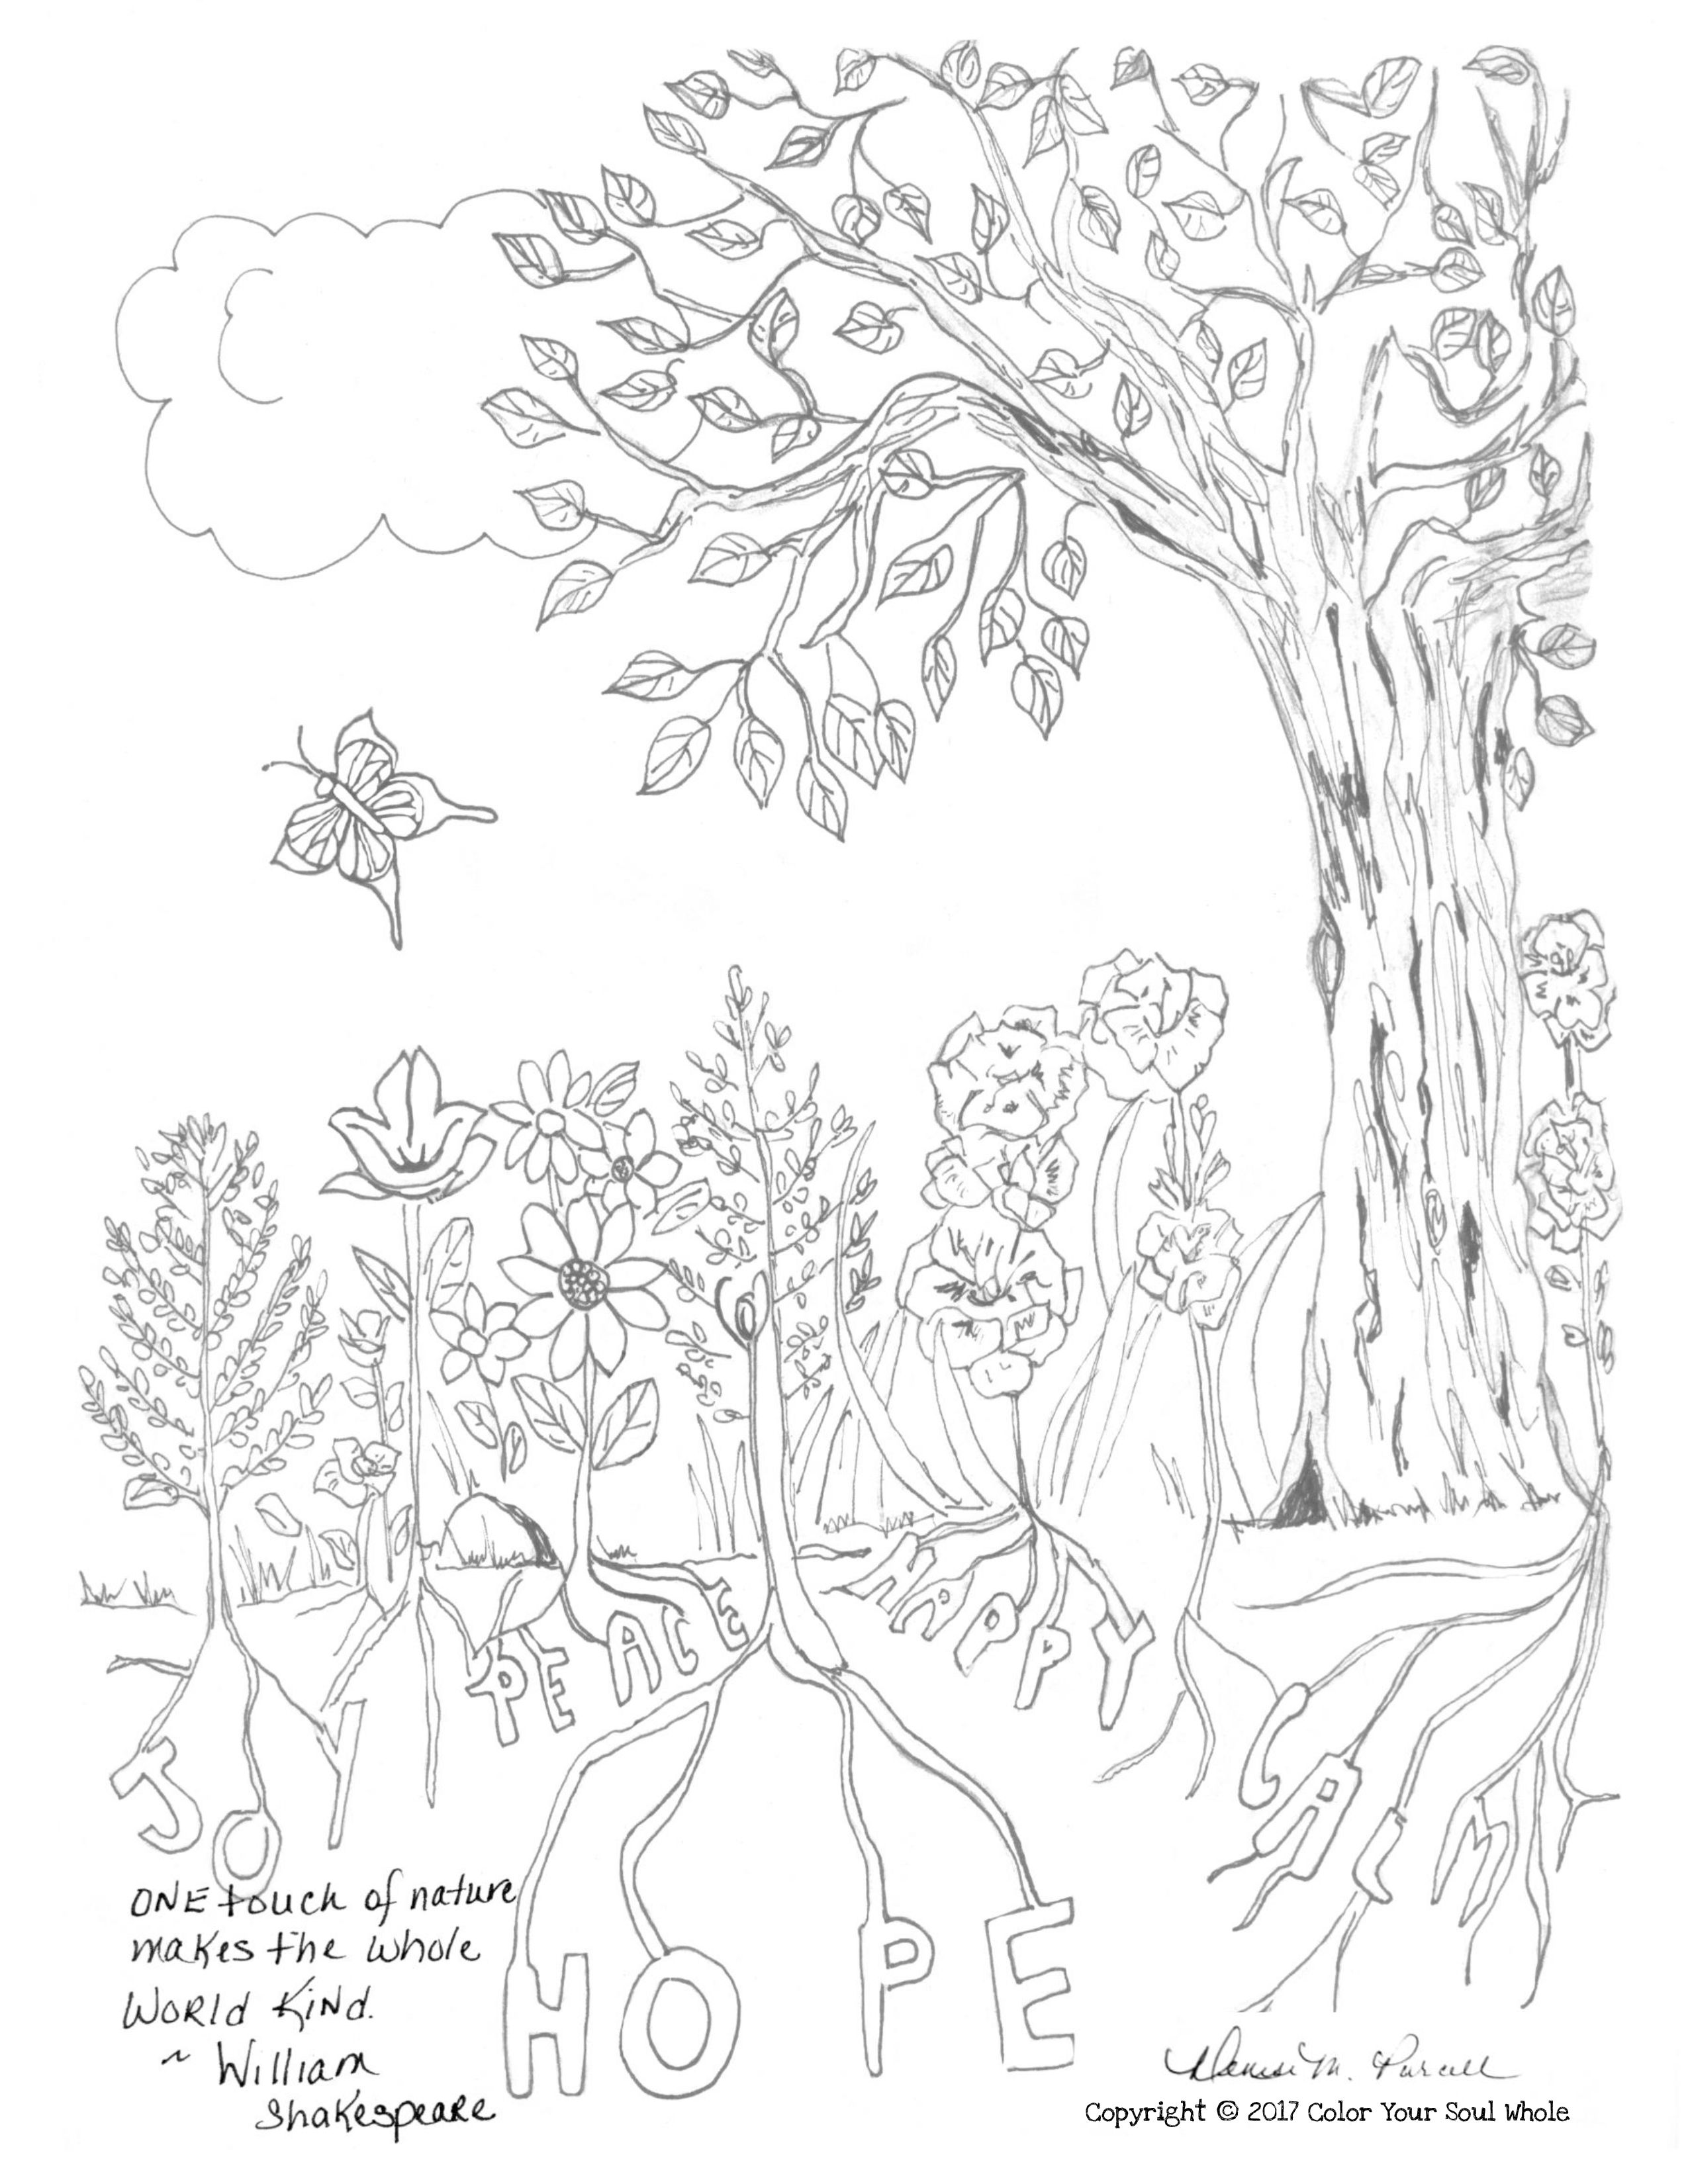 Free Printable Coloring Page From Color Your Soul Whole An Original Illustration By Encha Free Printable Coloring Pages Grief Journal Printable Coloring Pages